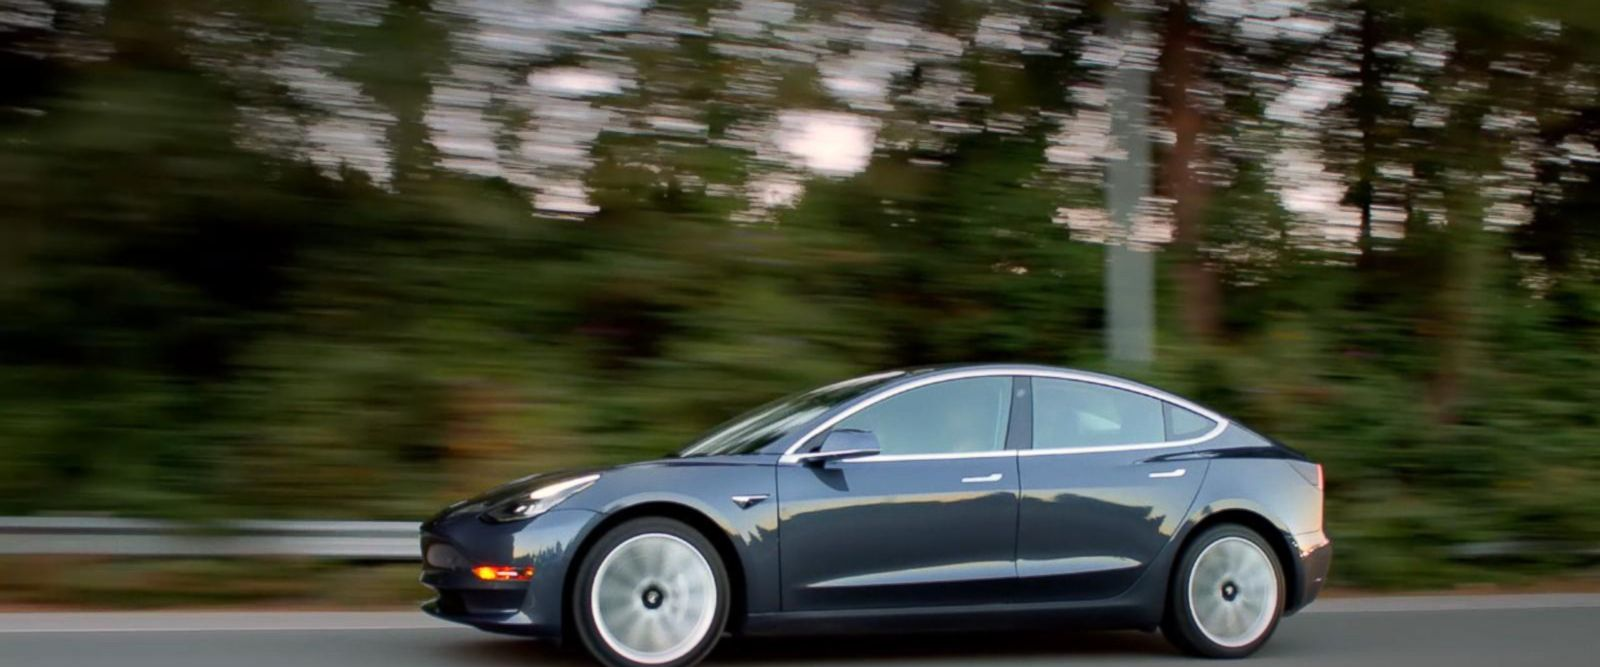 VIDEO: Test-driving Tesla Model 3 as waitlist and anticipation build